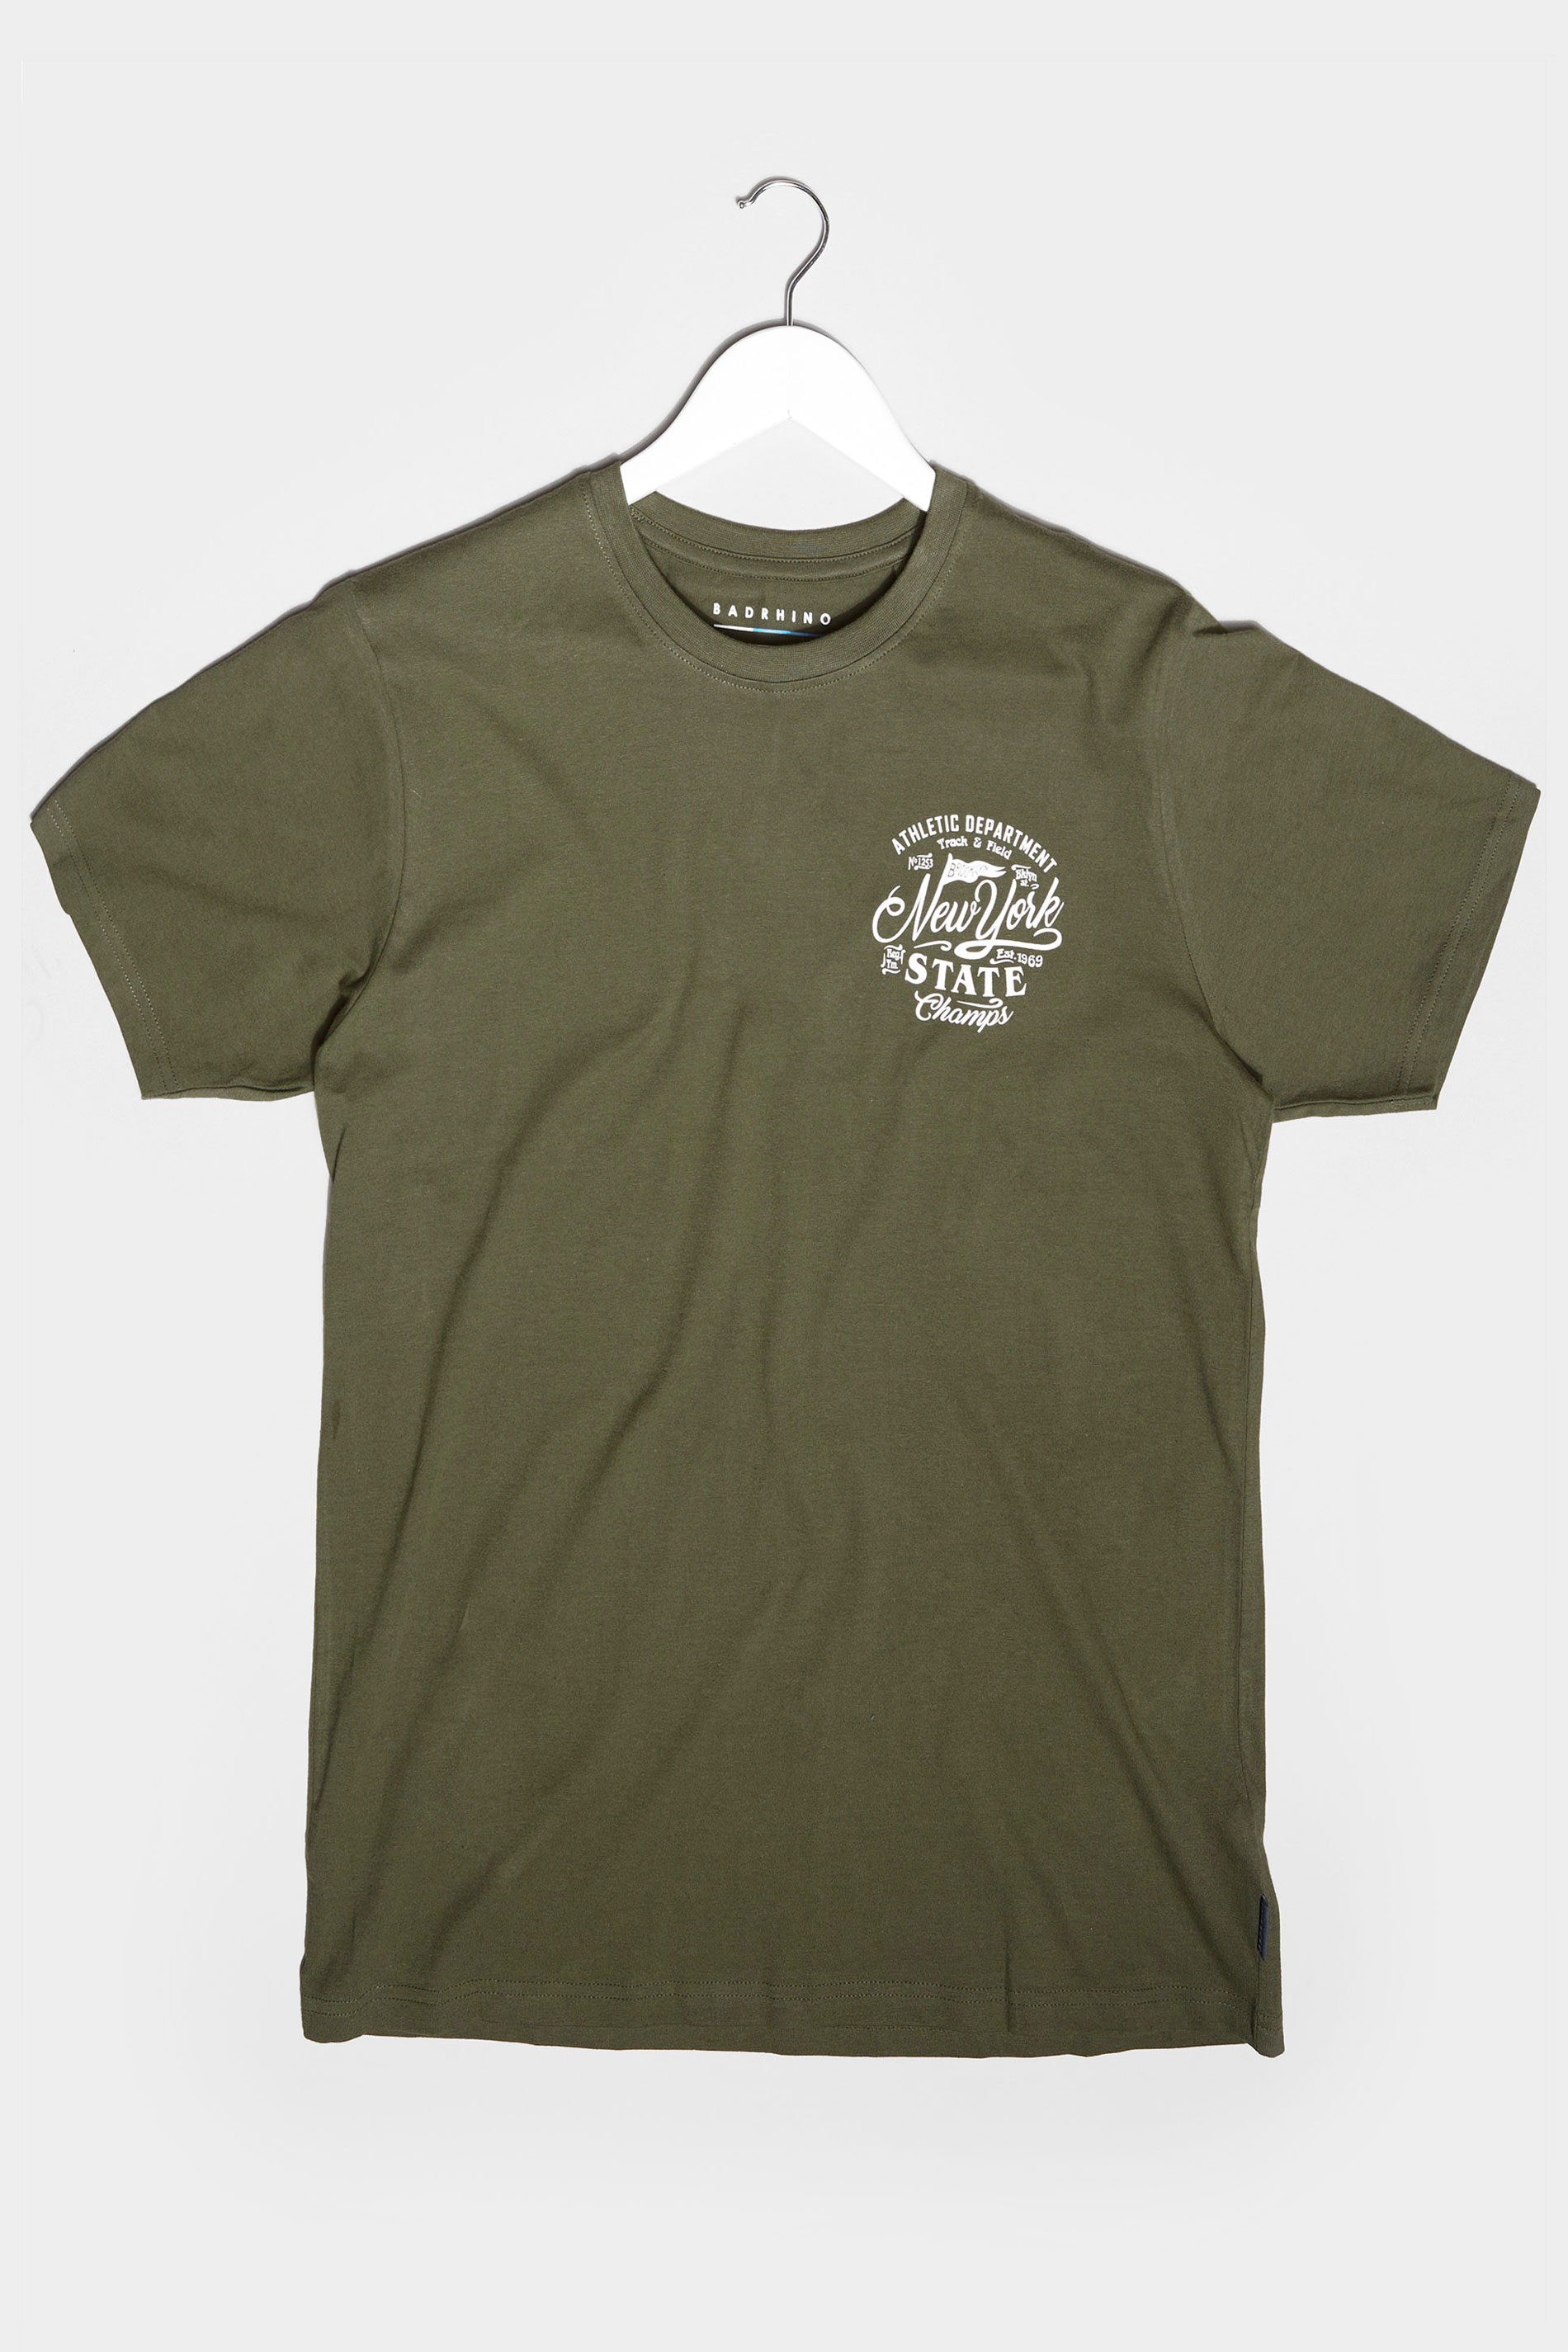 BadRhino Khaki New York Champs T-Shirt